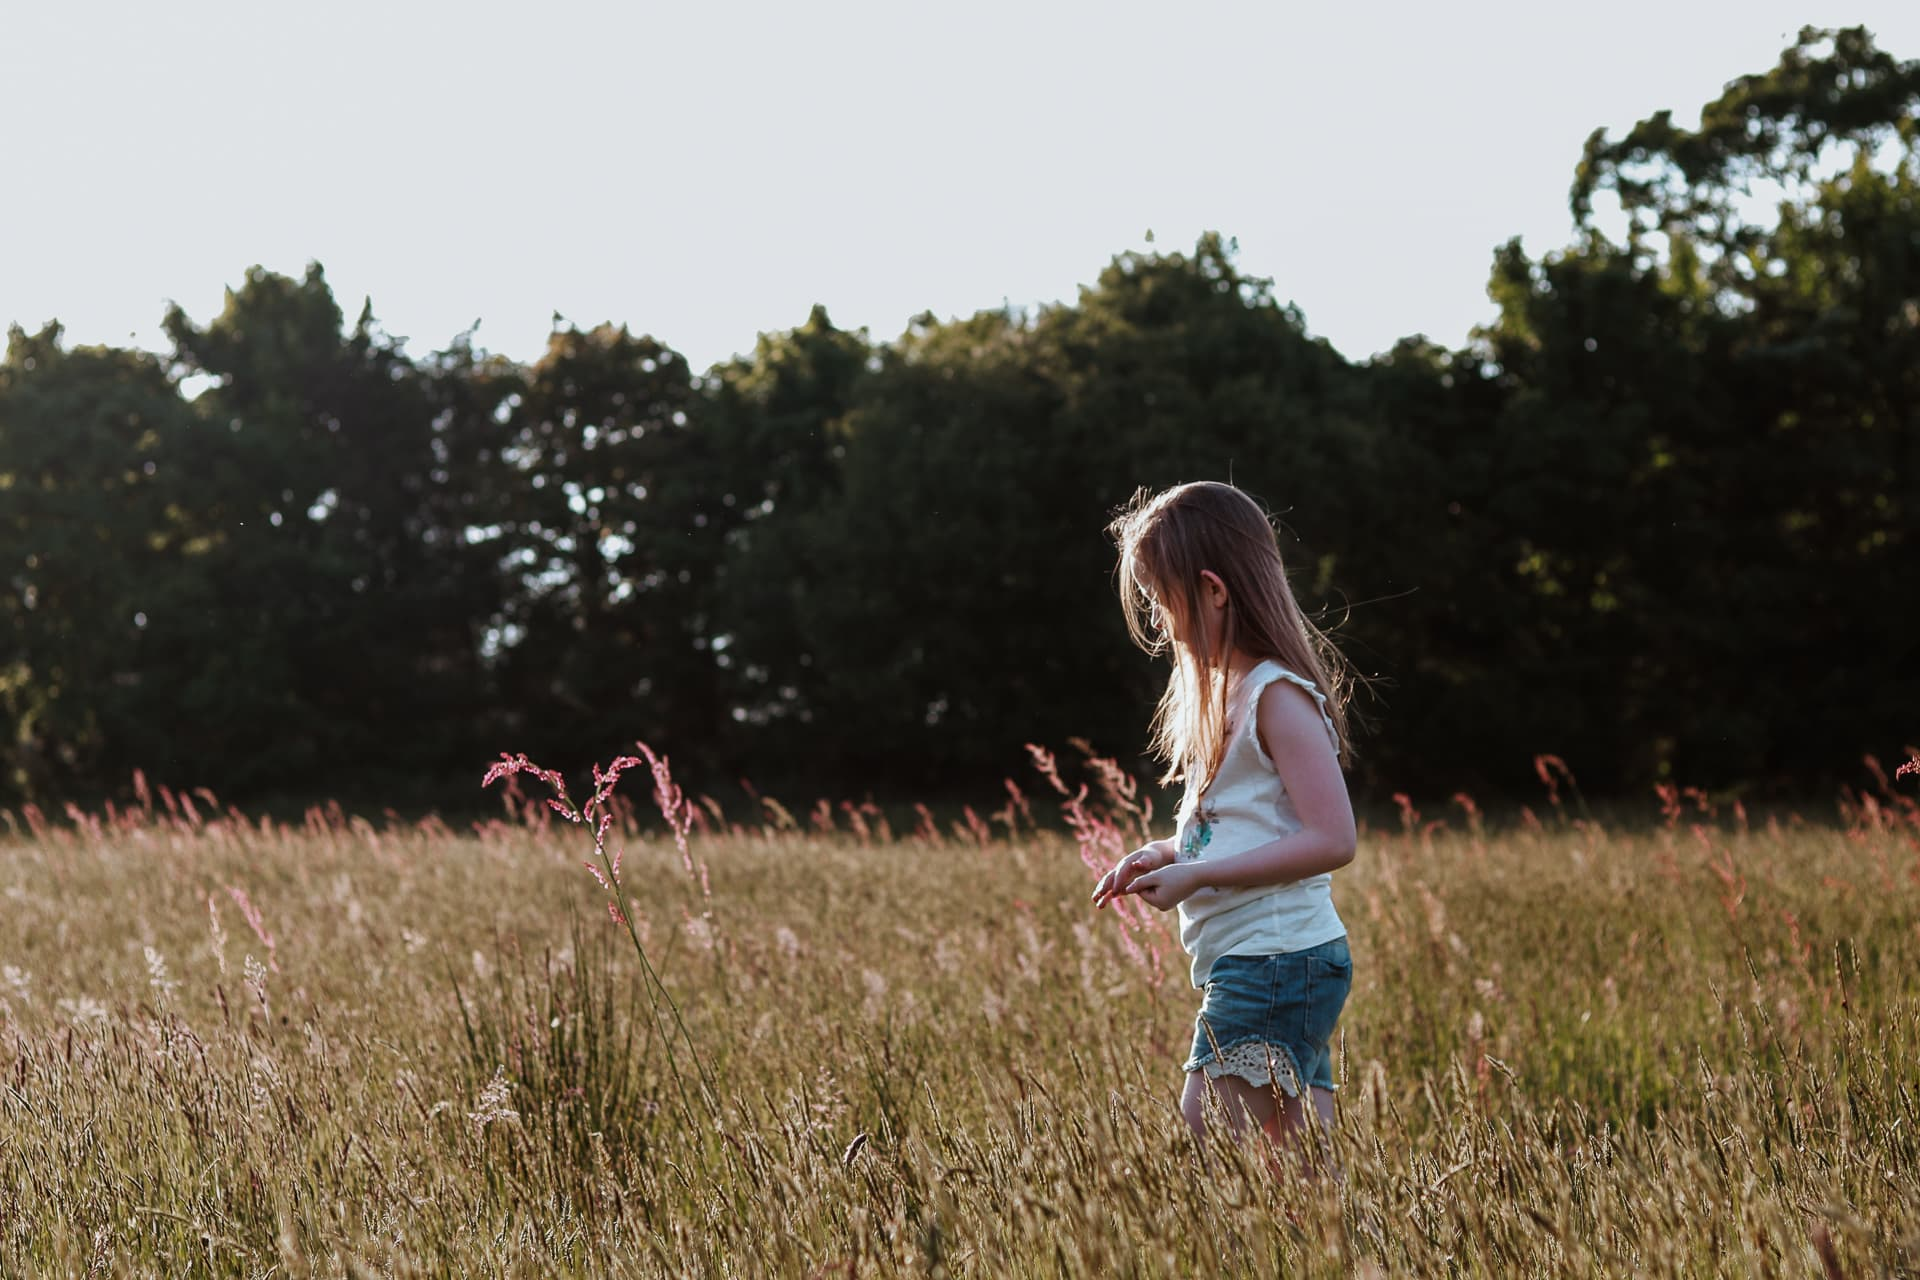 Young girl playing with grass seeds in a sunny field